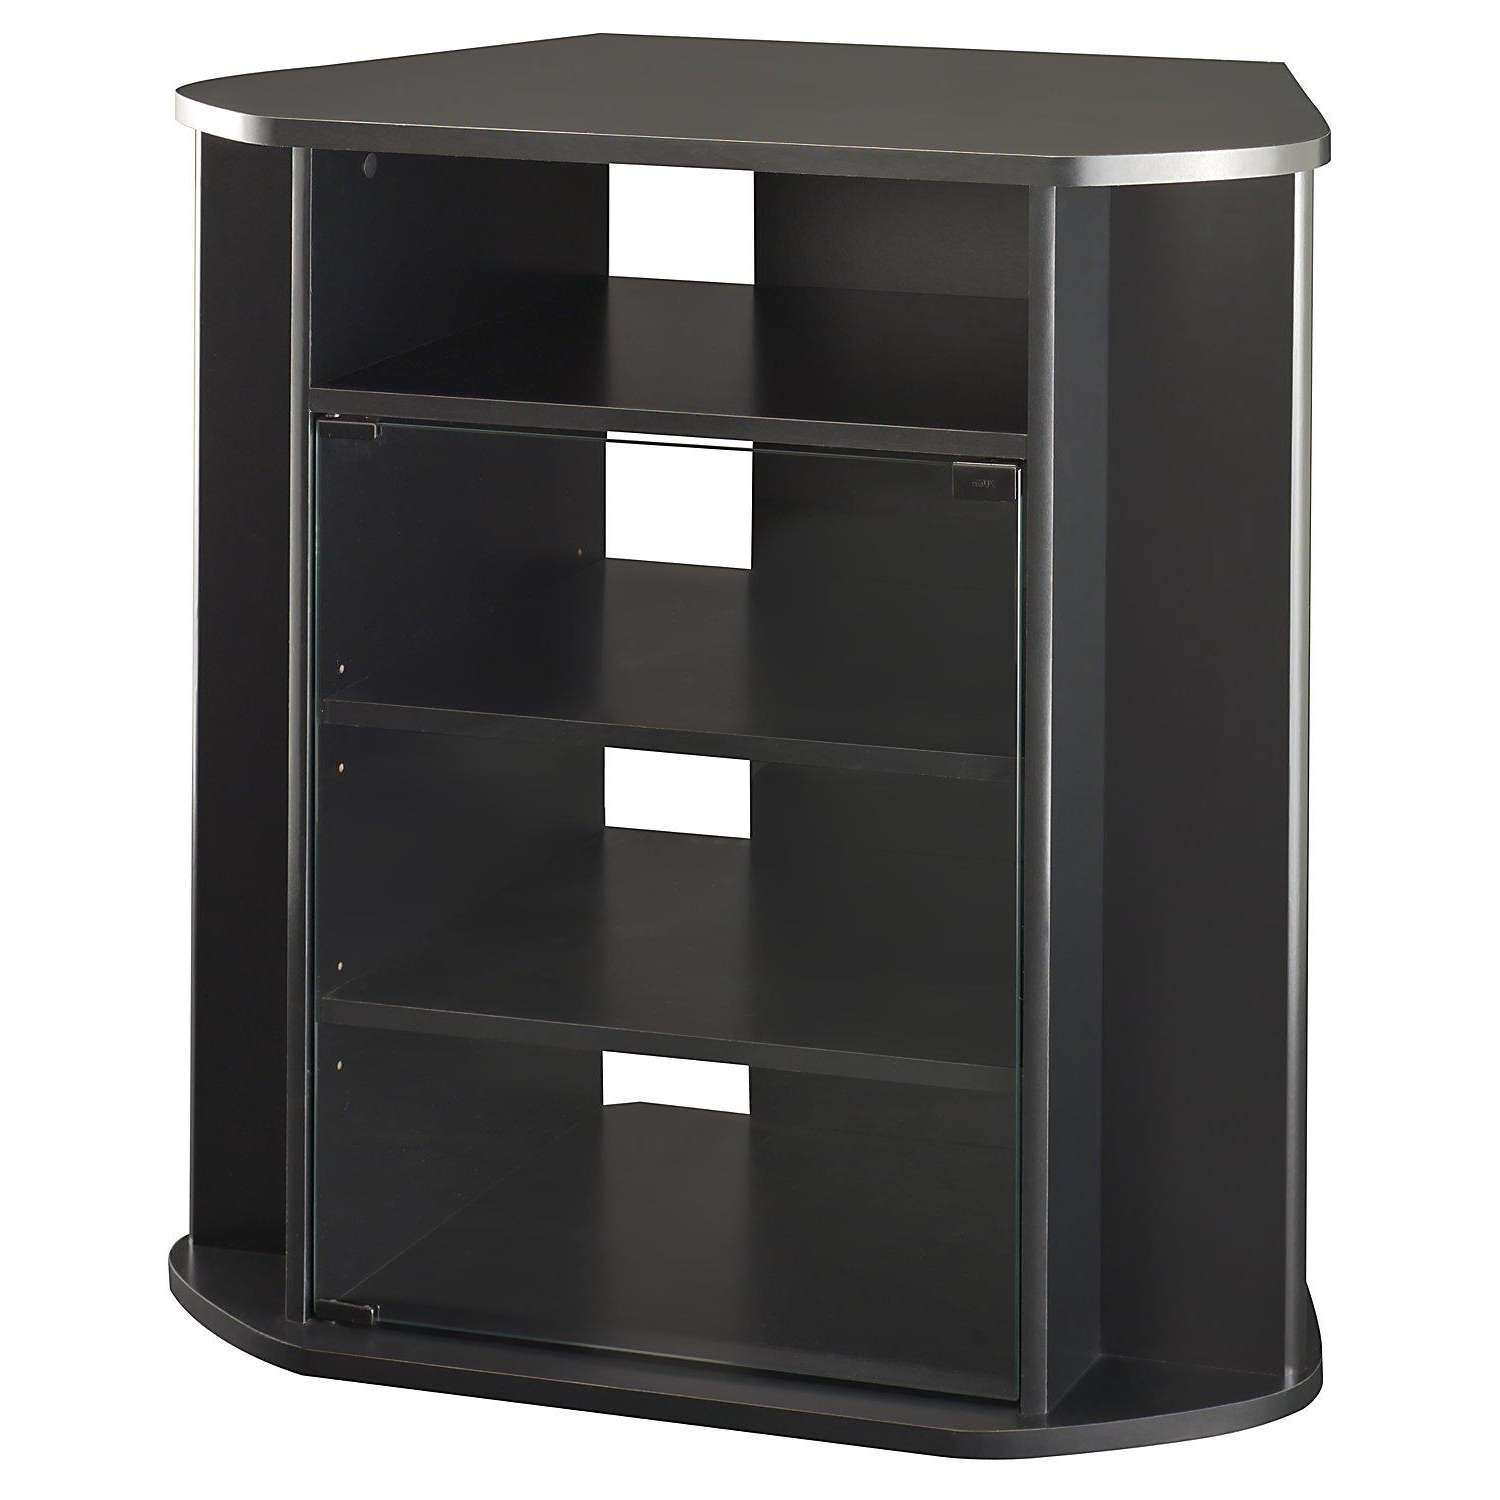 Tall Corner Tv Stand With Glass Door Cabinet In Black Color Inside Black Tv Stands With Glass Doors (View 12 of 15)